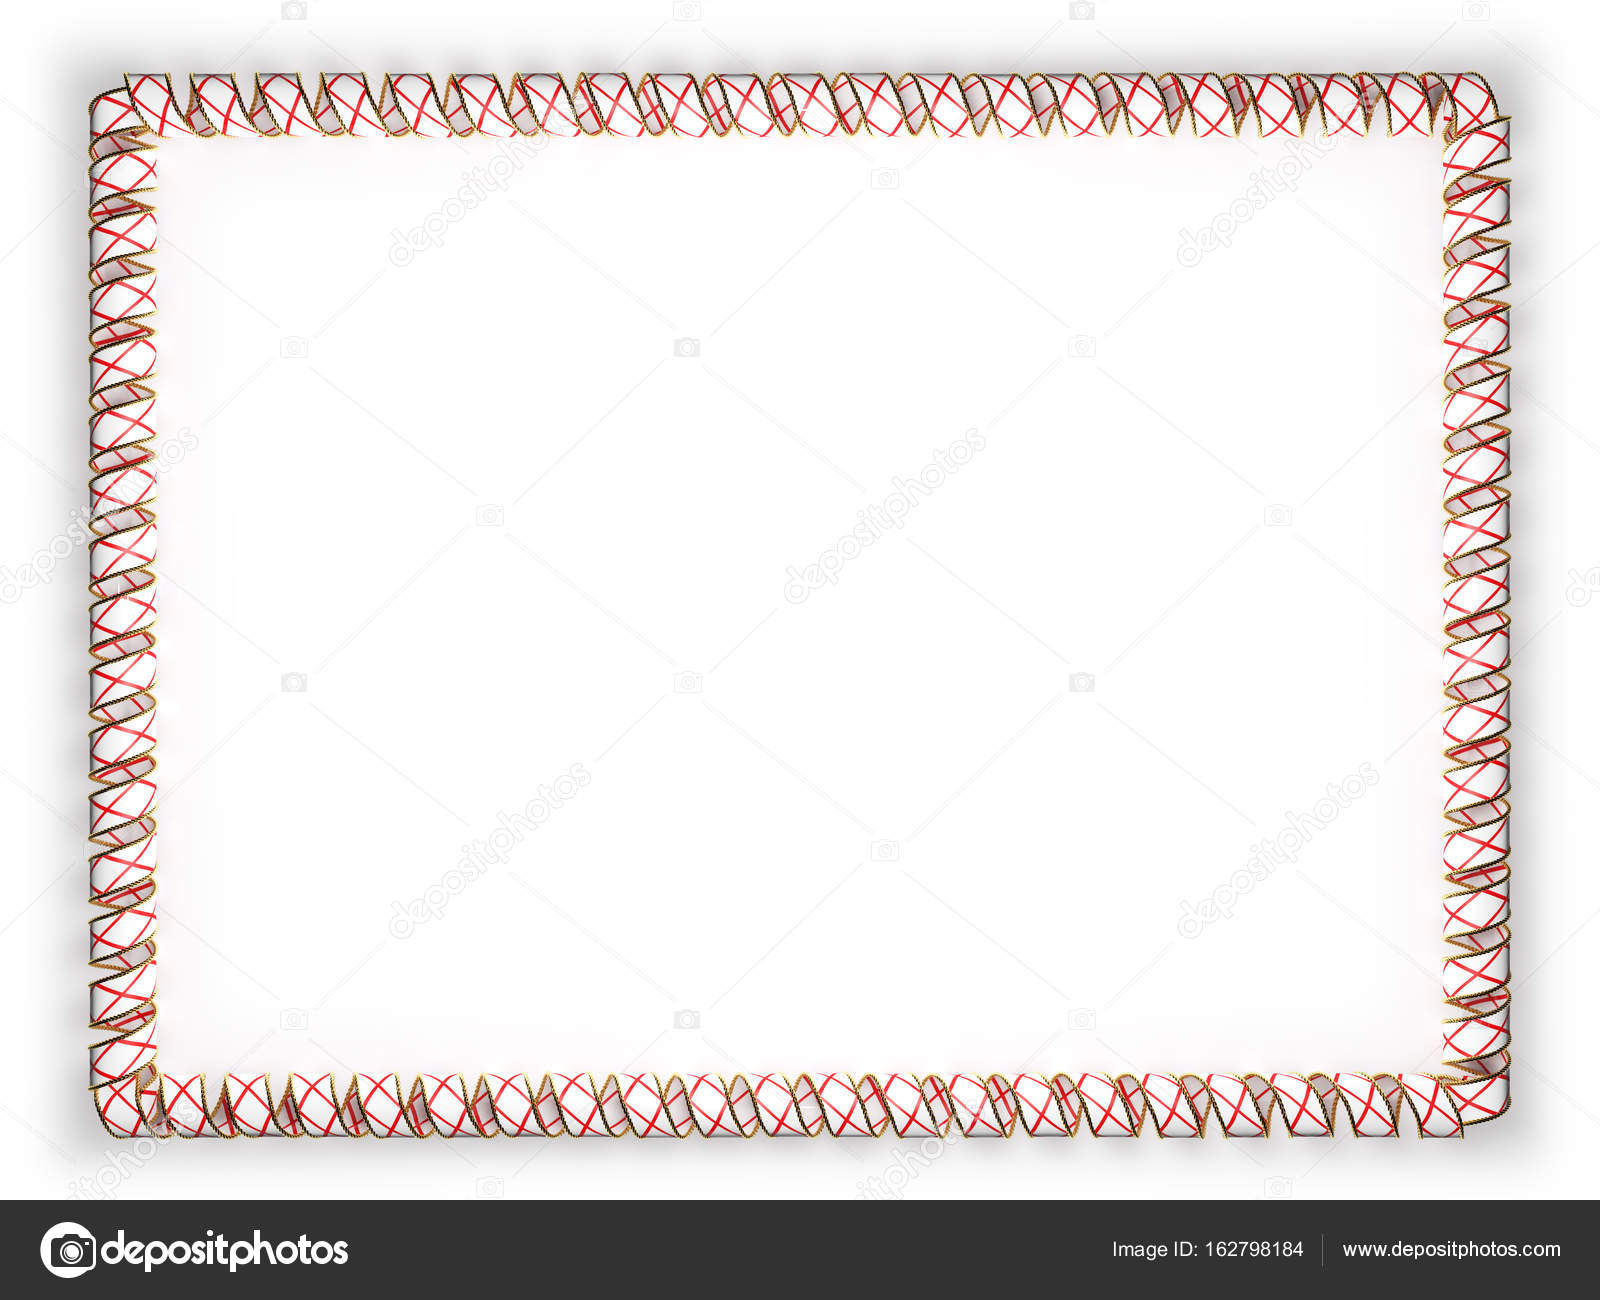 Frame And Border Of Ribbon With The State Alabama Flag USA Edging From